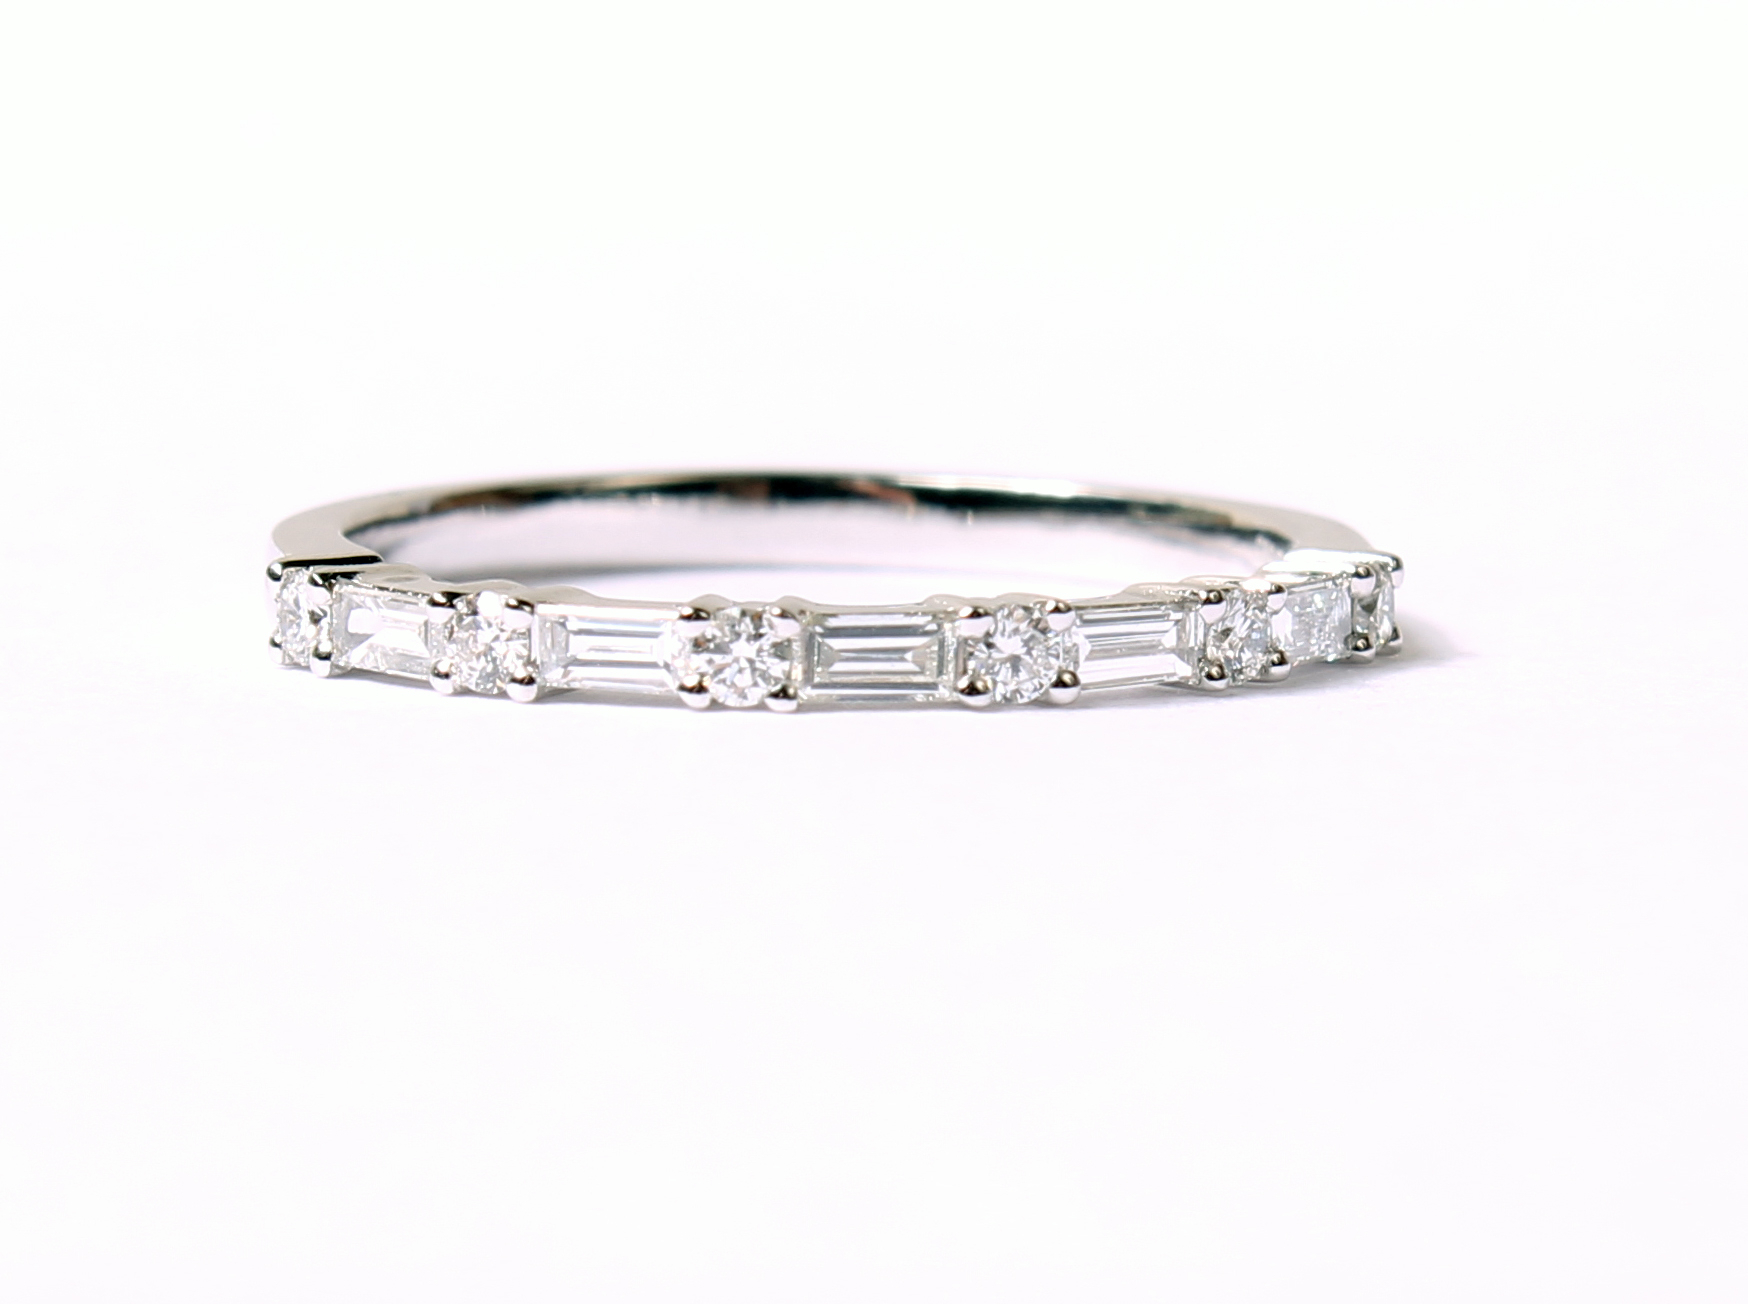 14k White Gold Baguette And Round Diamond Band – 119 10097 Intended For Most Popular Baguette And Round Diamond Alternating Multi Row Anniversary Bands In White Gold (View 15 of 25)